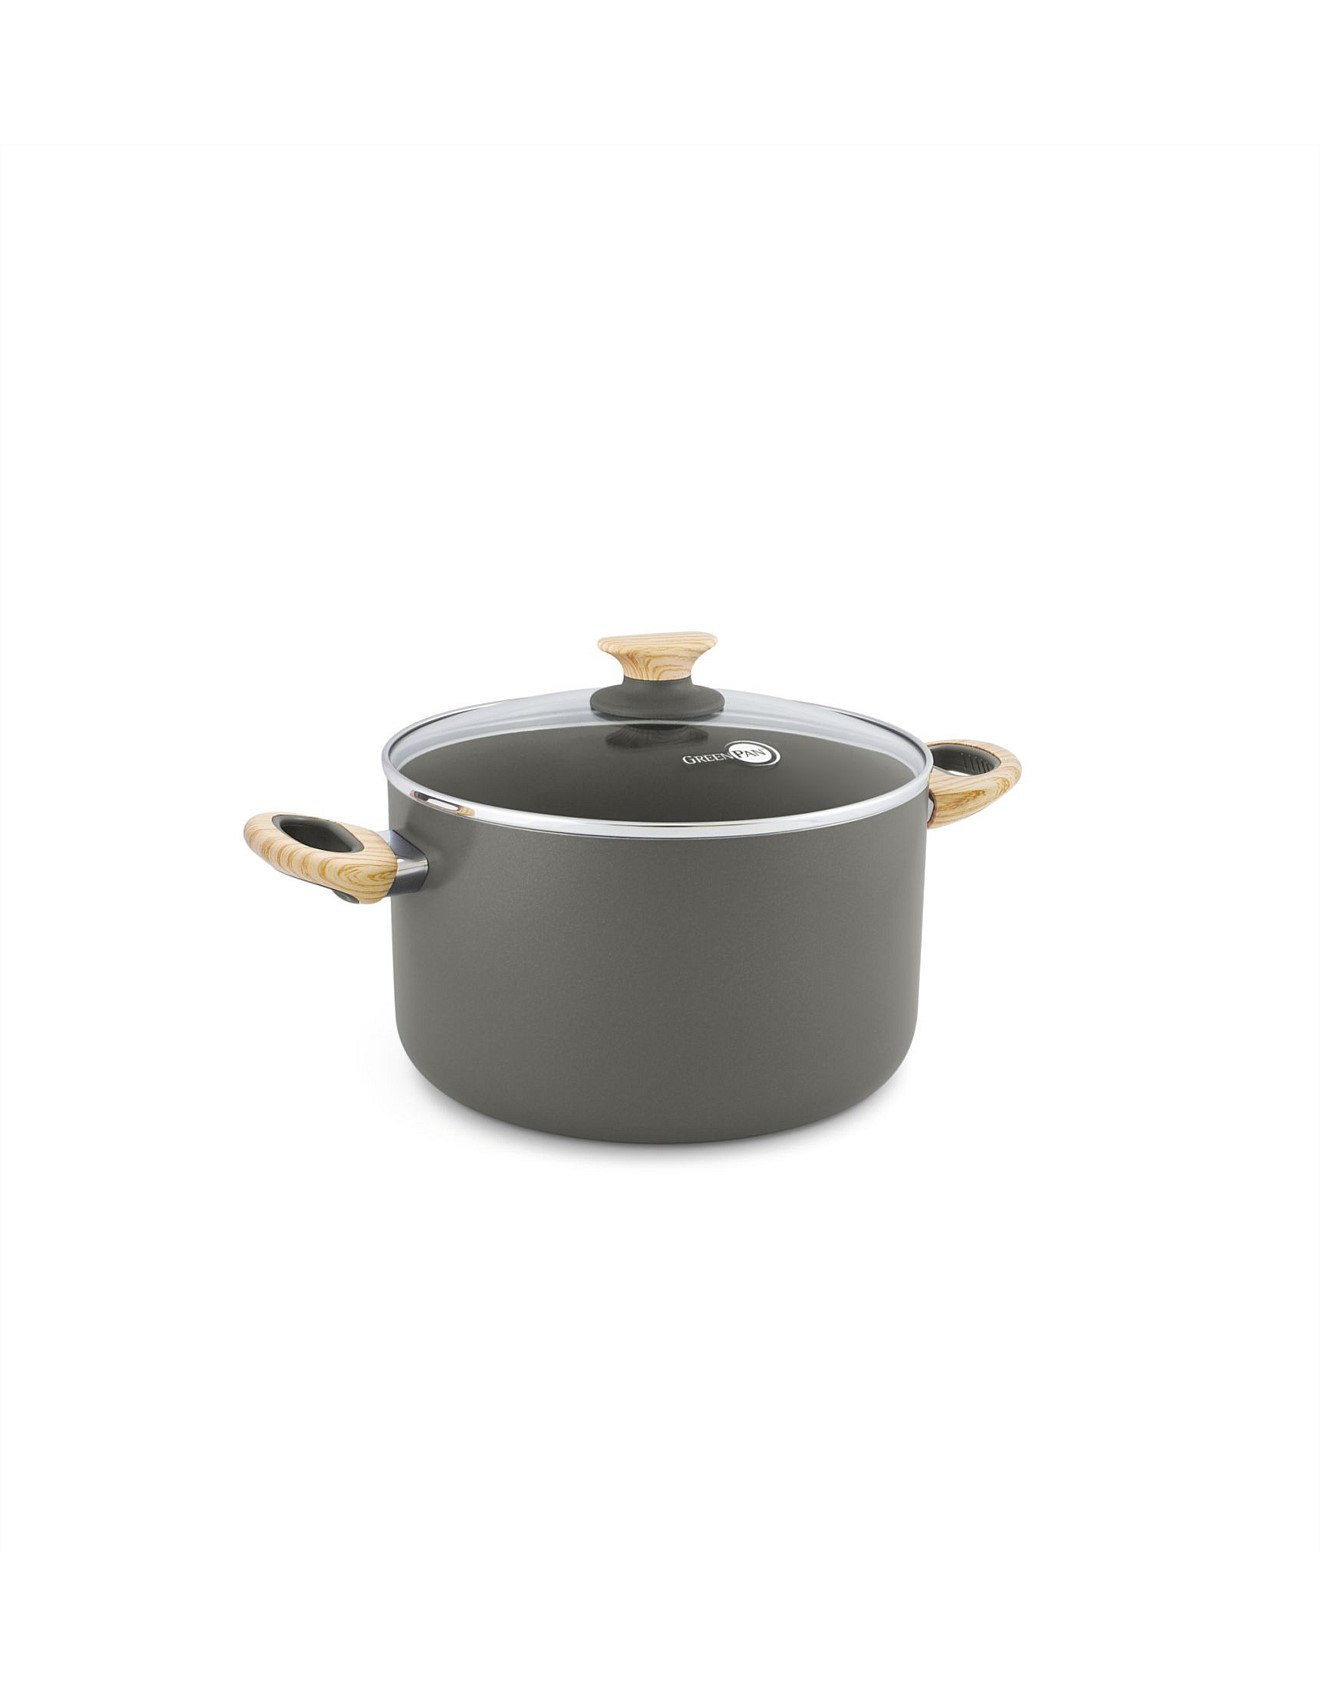 Sigle Casserole Induction Home And Food Bed Bath Kitchen And Dining David Jones